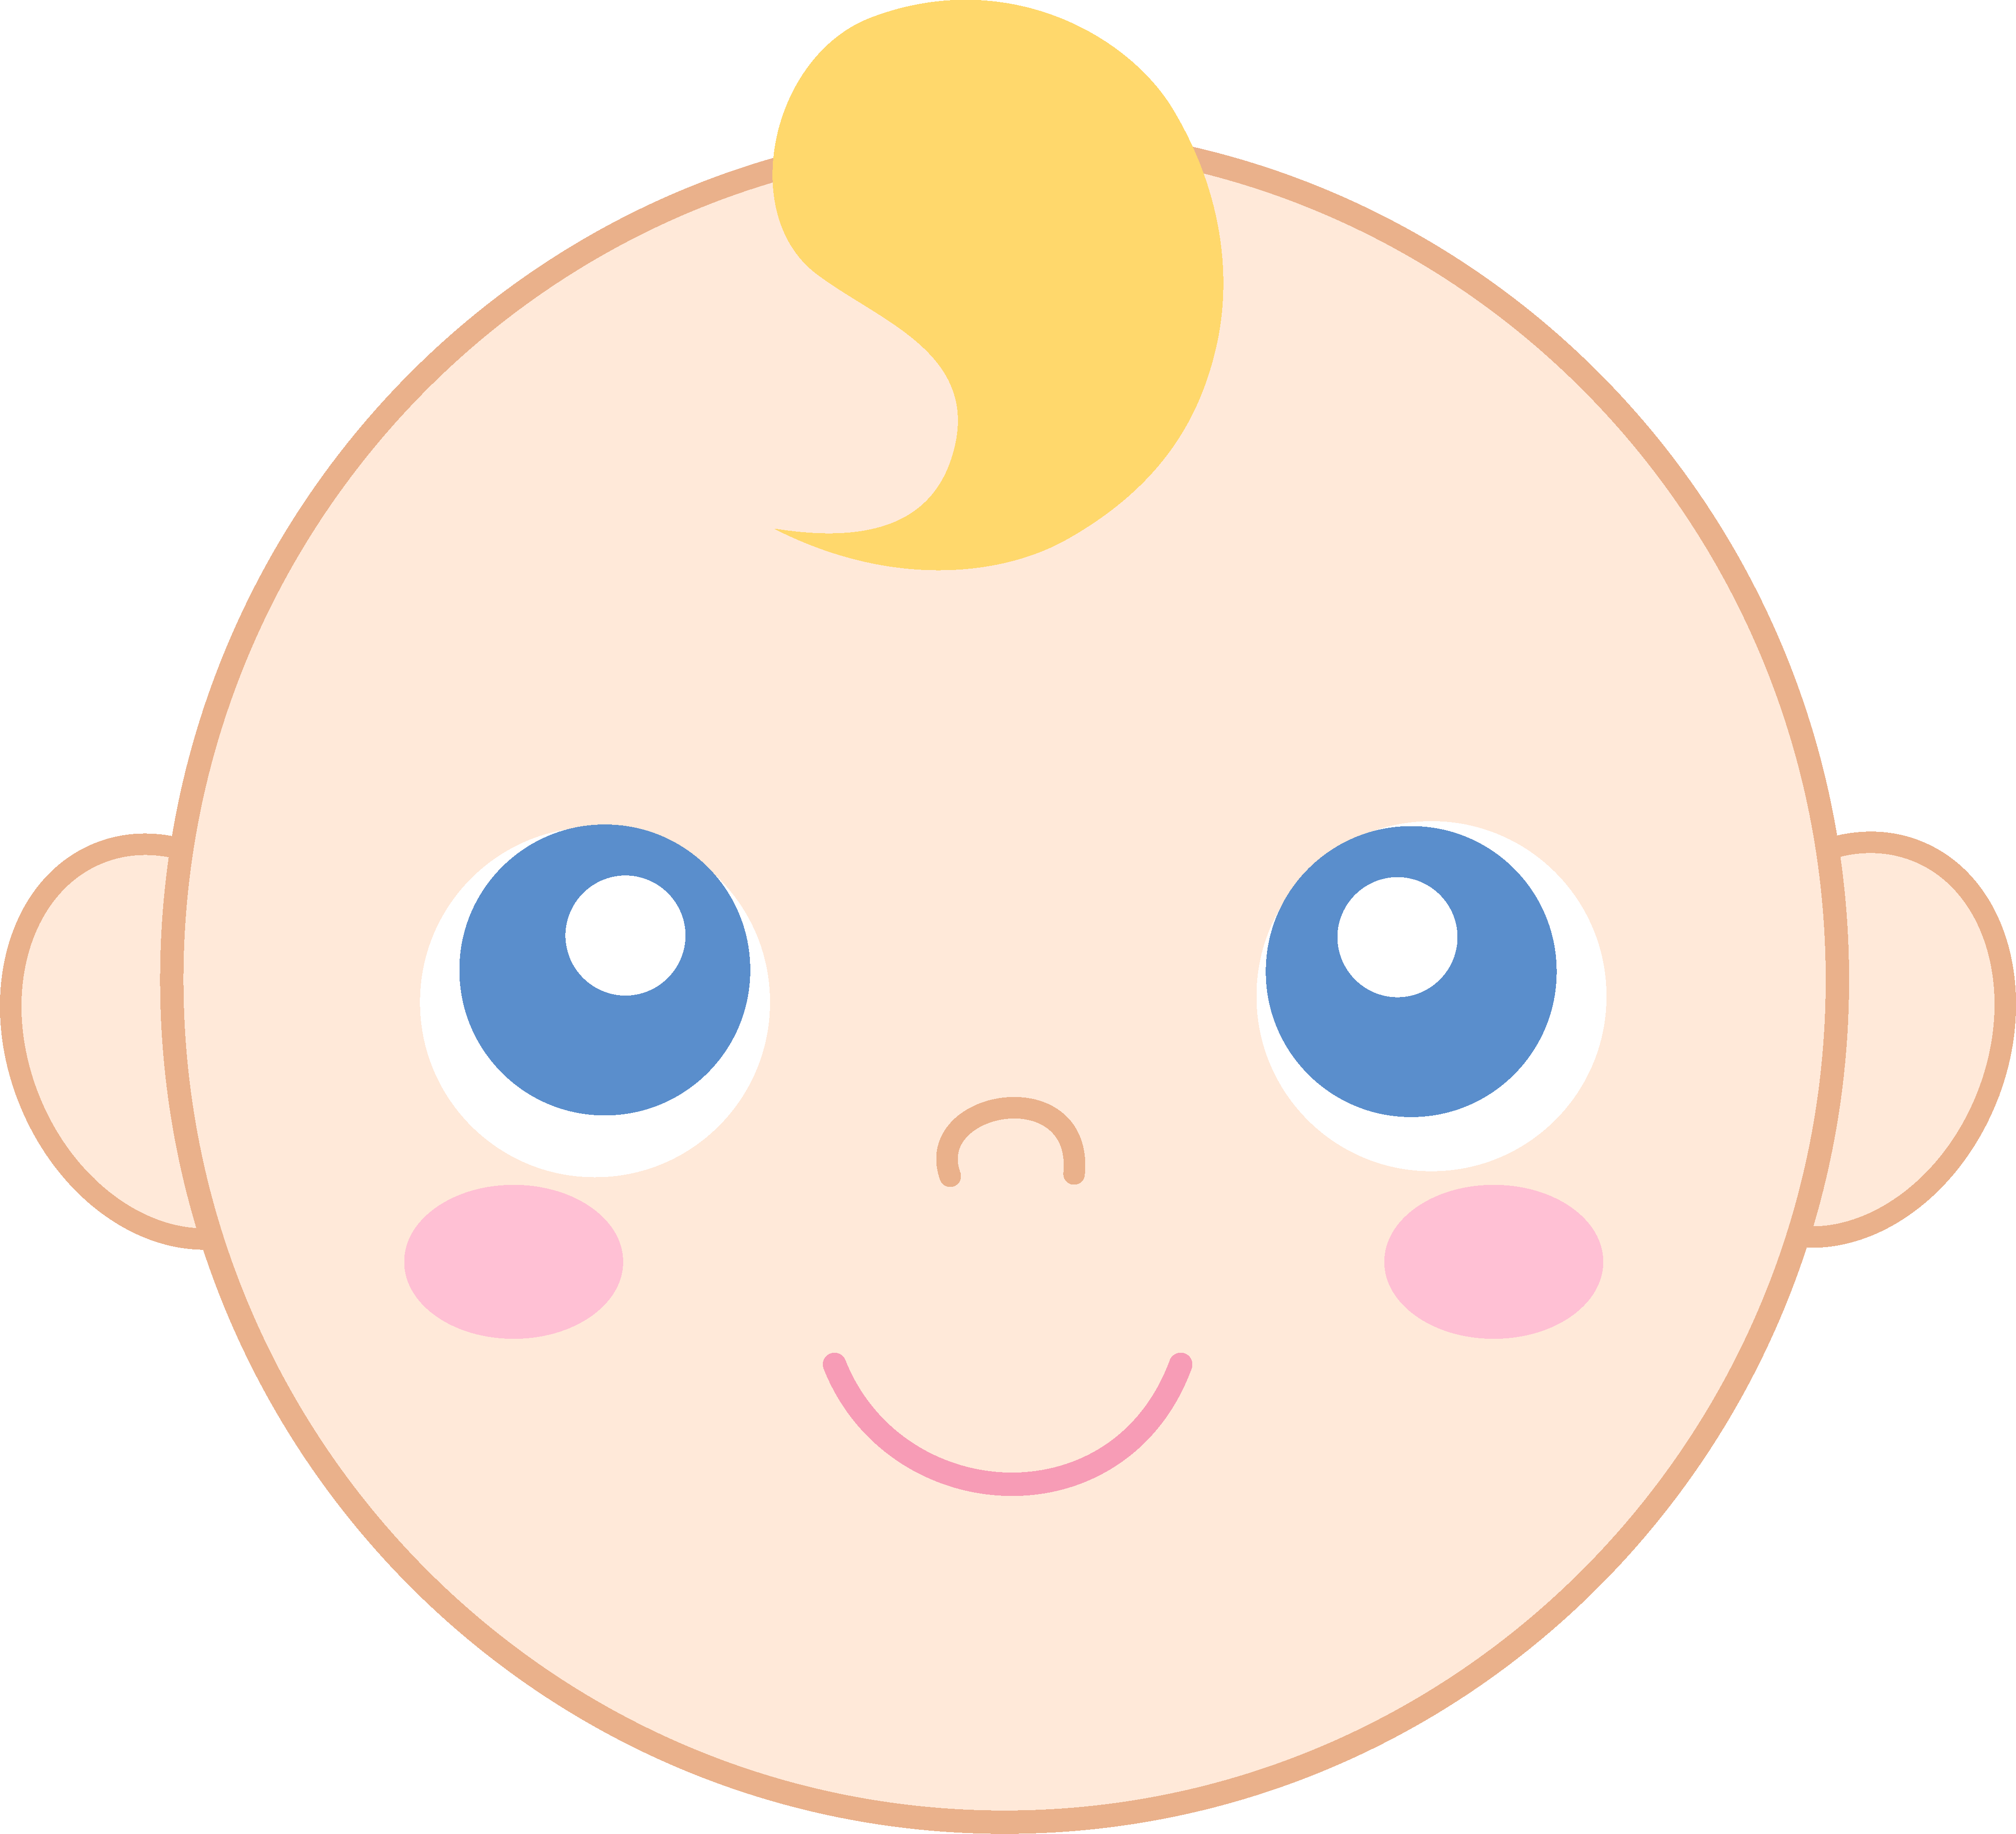 image transparent Faces clipart. Cute baby face free